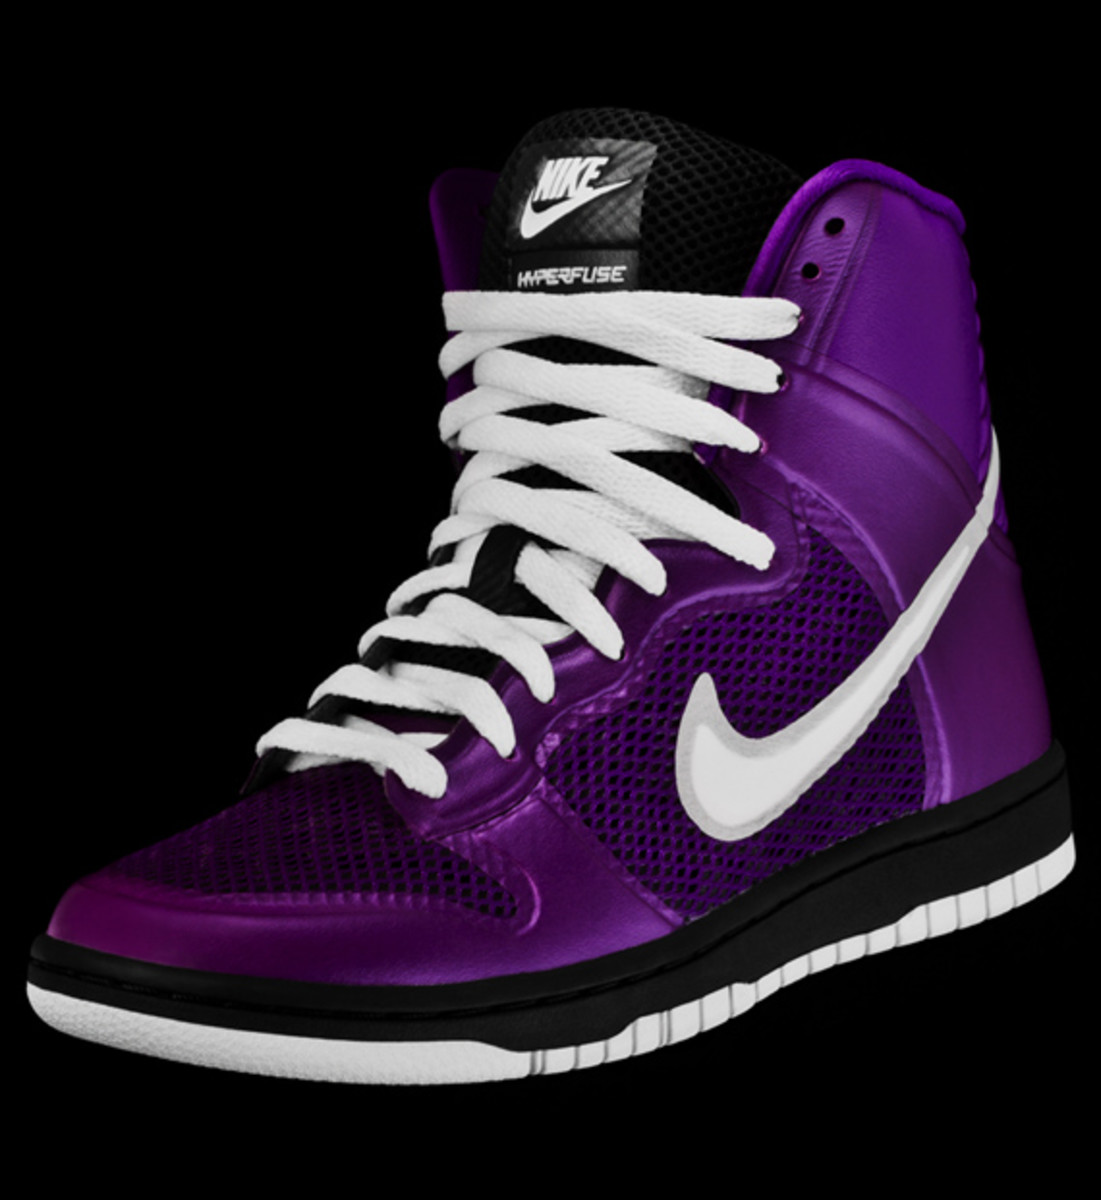 nike-sportswear-hyperfuse-dunk-high-01